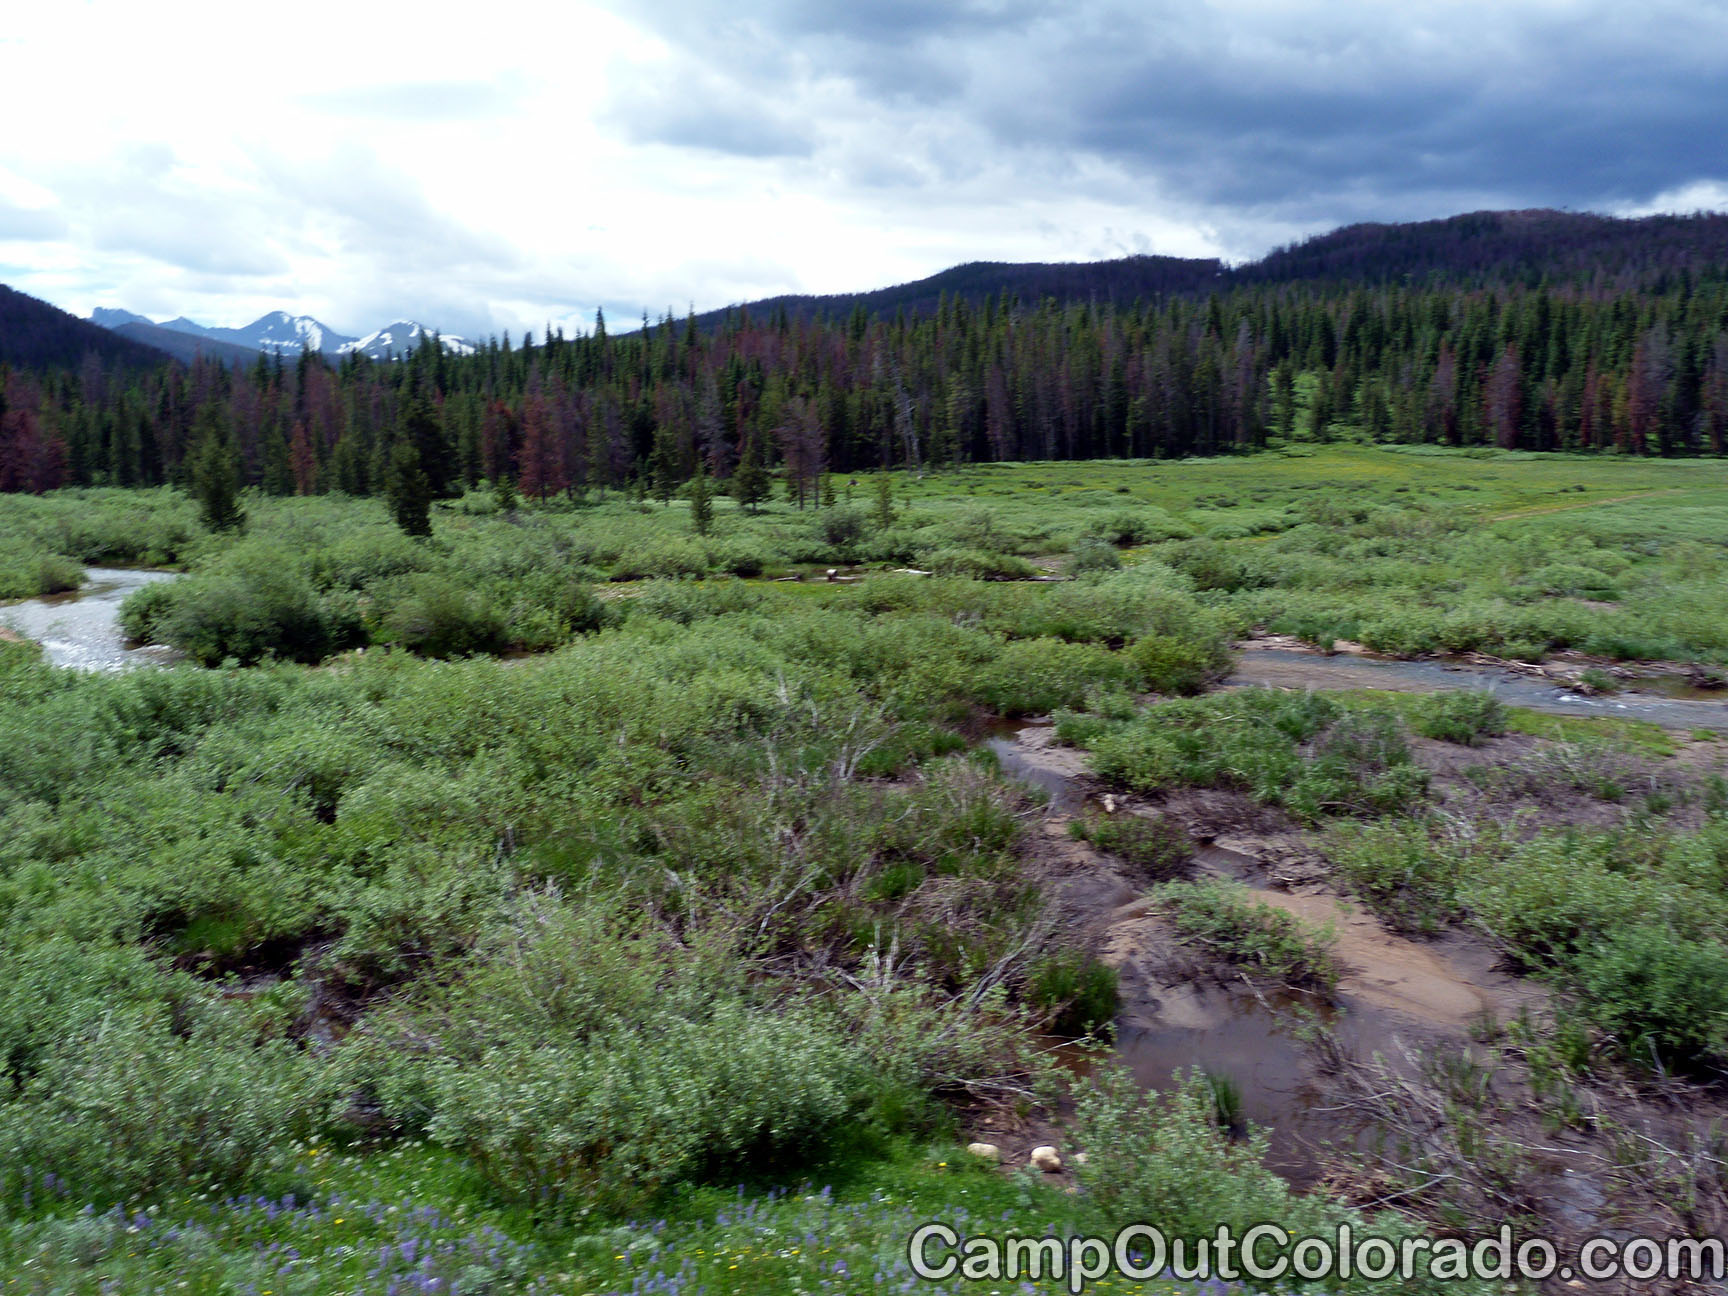 Camp-out-colorado-bockman-campground-willows-on-river